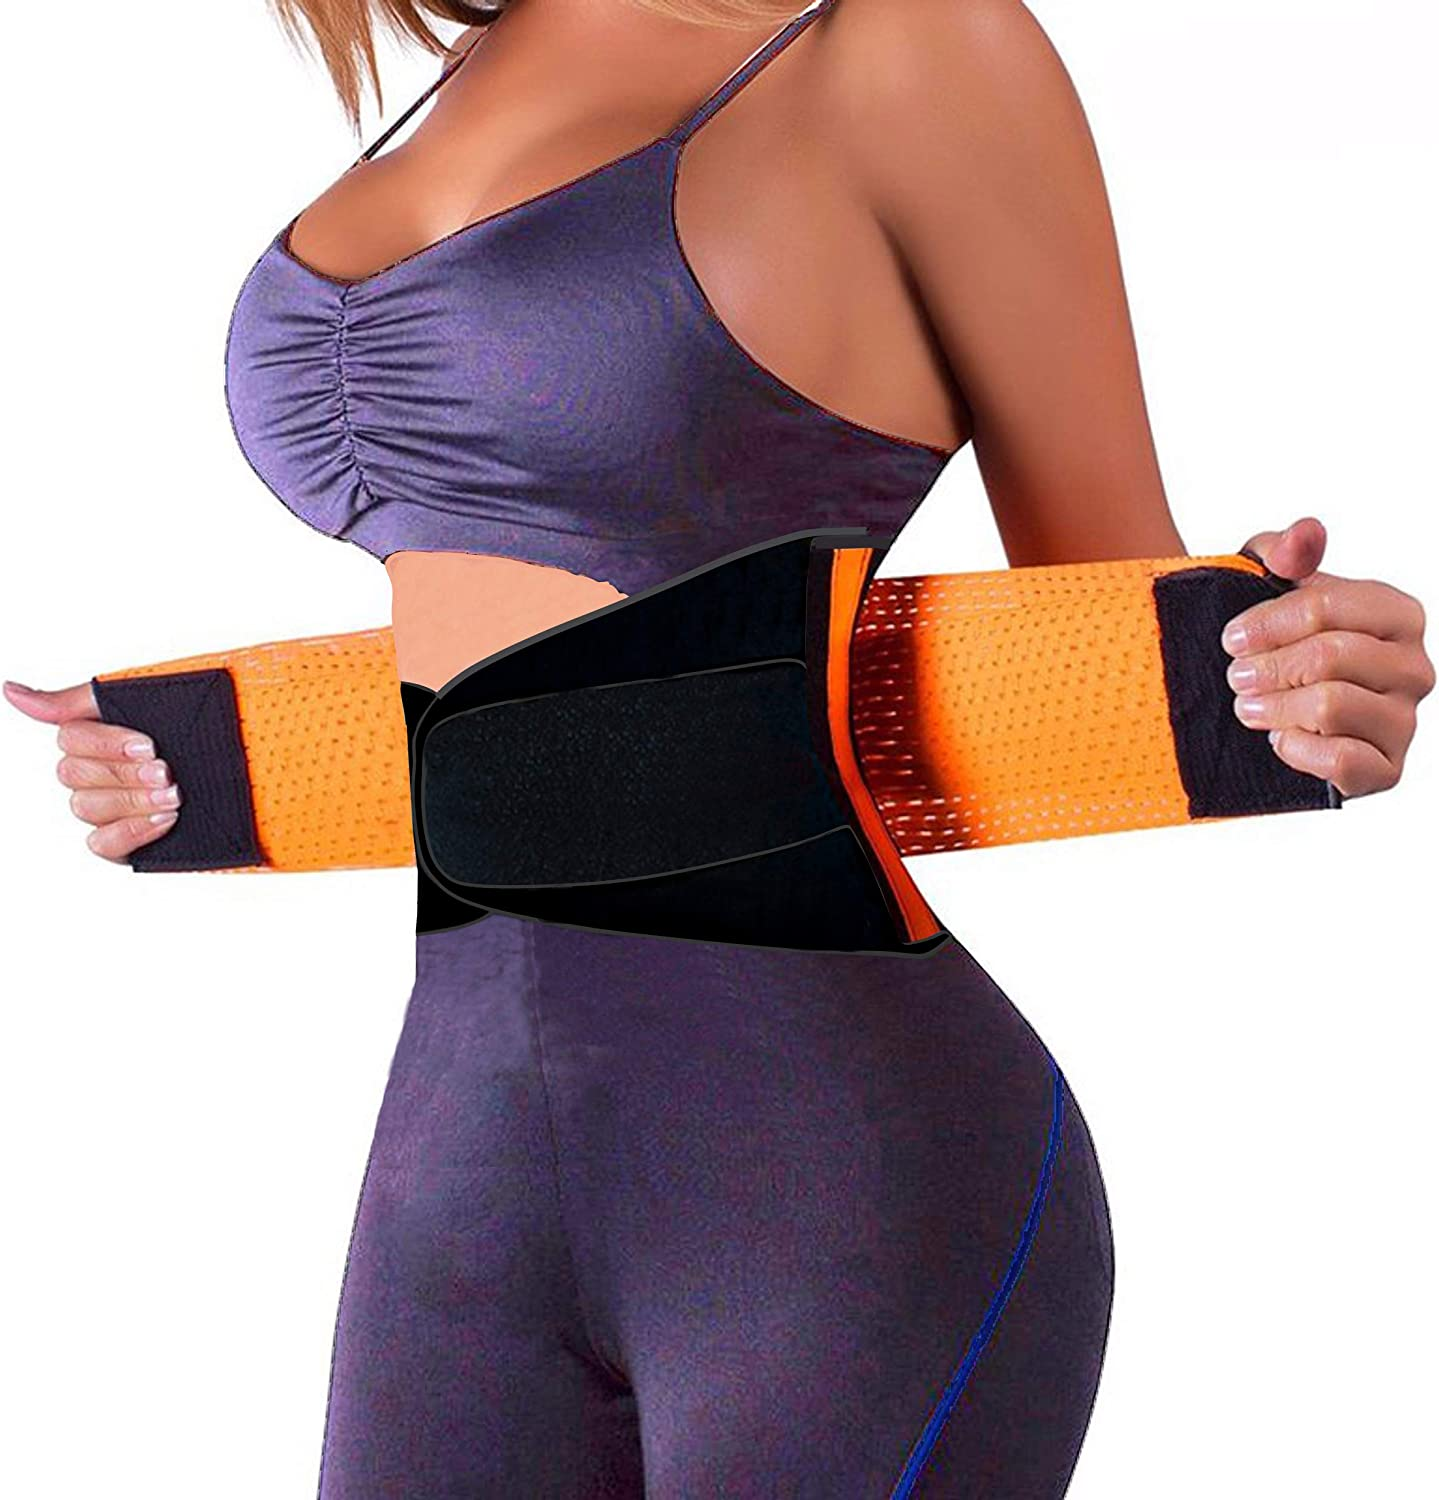 SchwabMarken Sport Power Belt Waist trainer 4 fitness belt